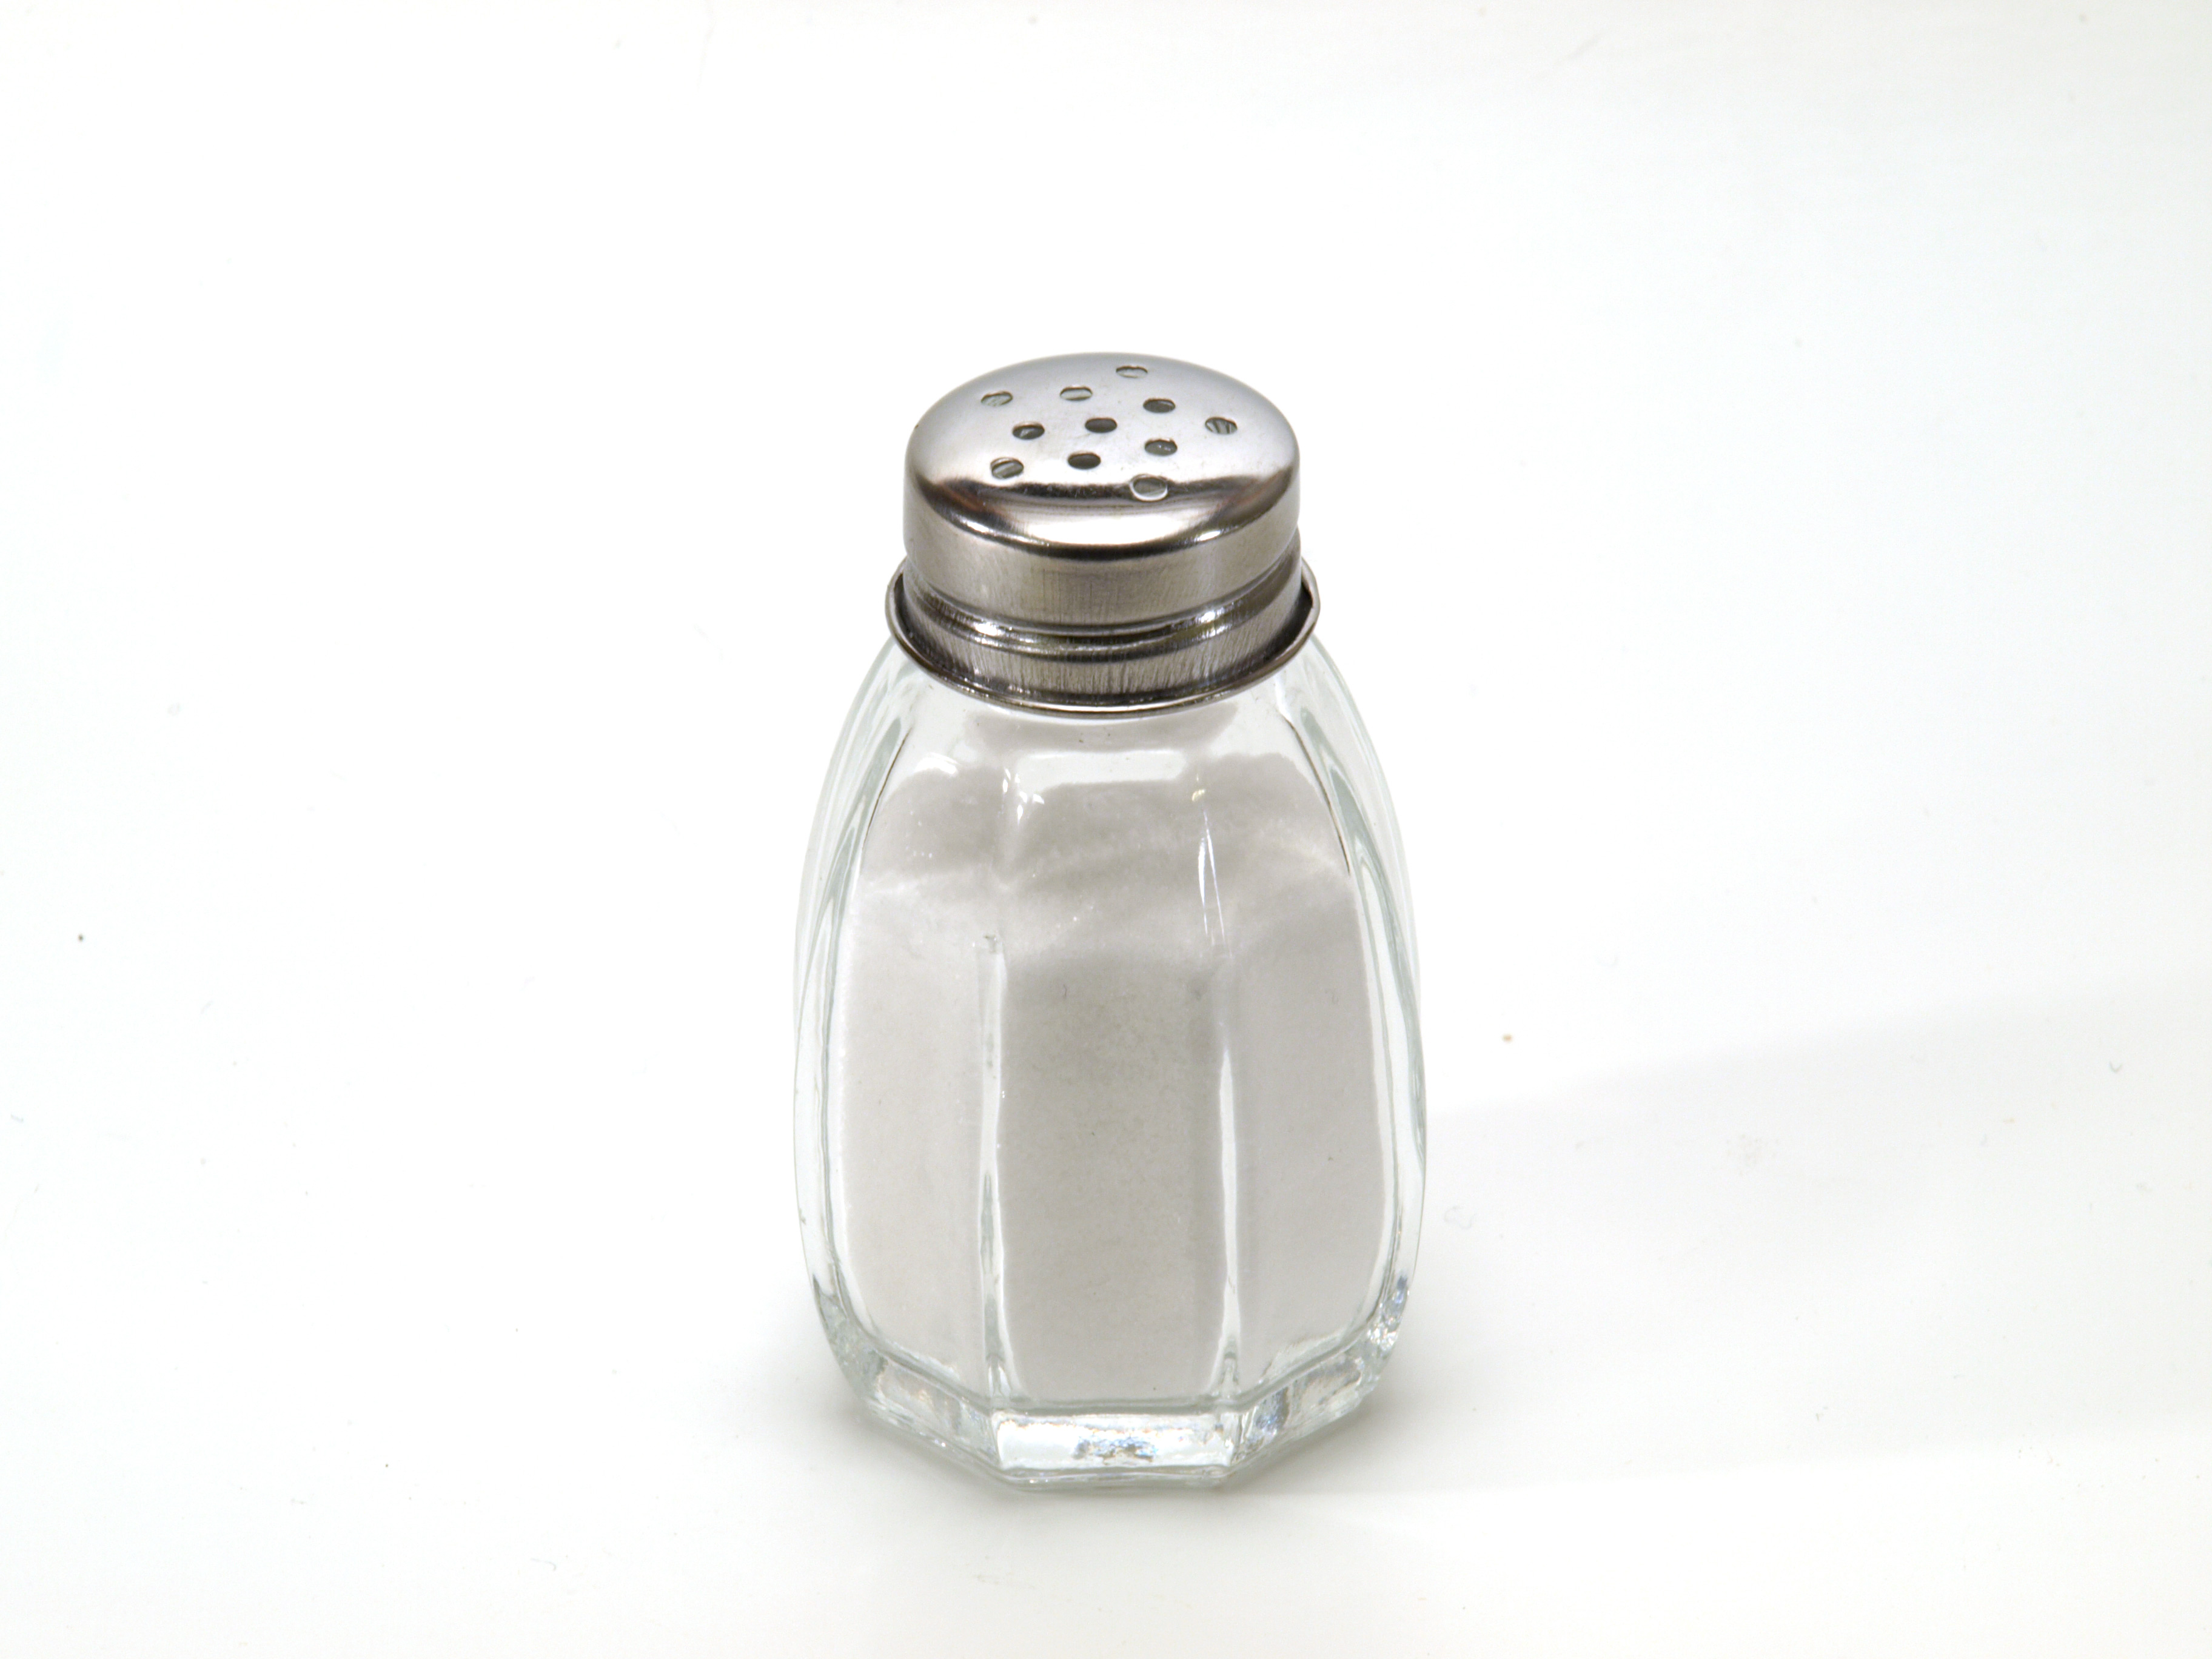 Common Kitchen Table Salt